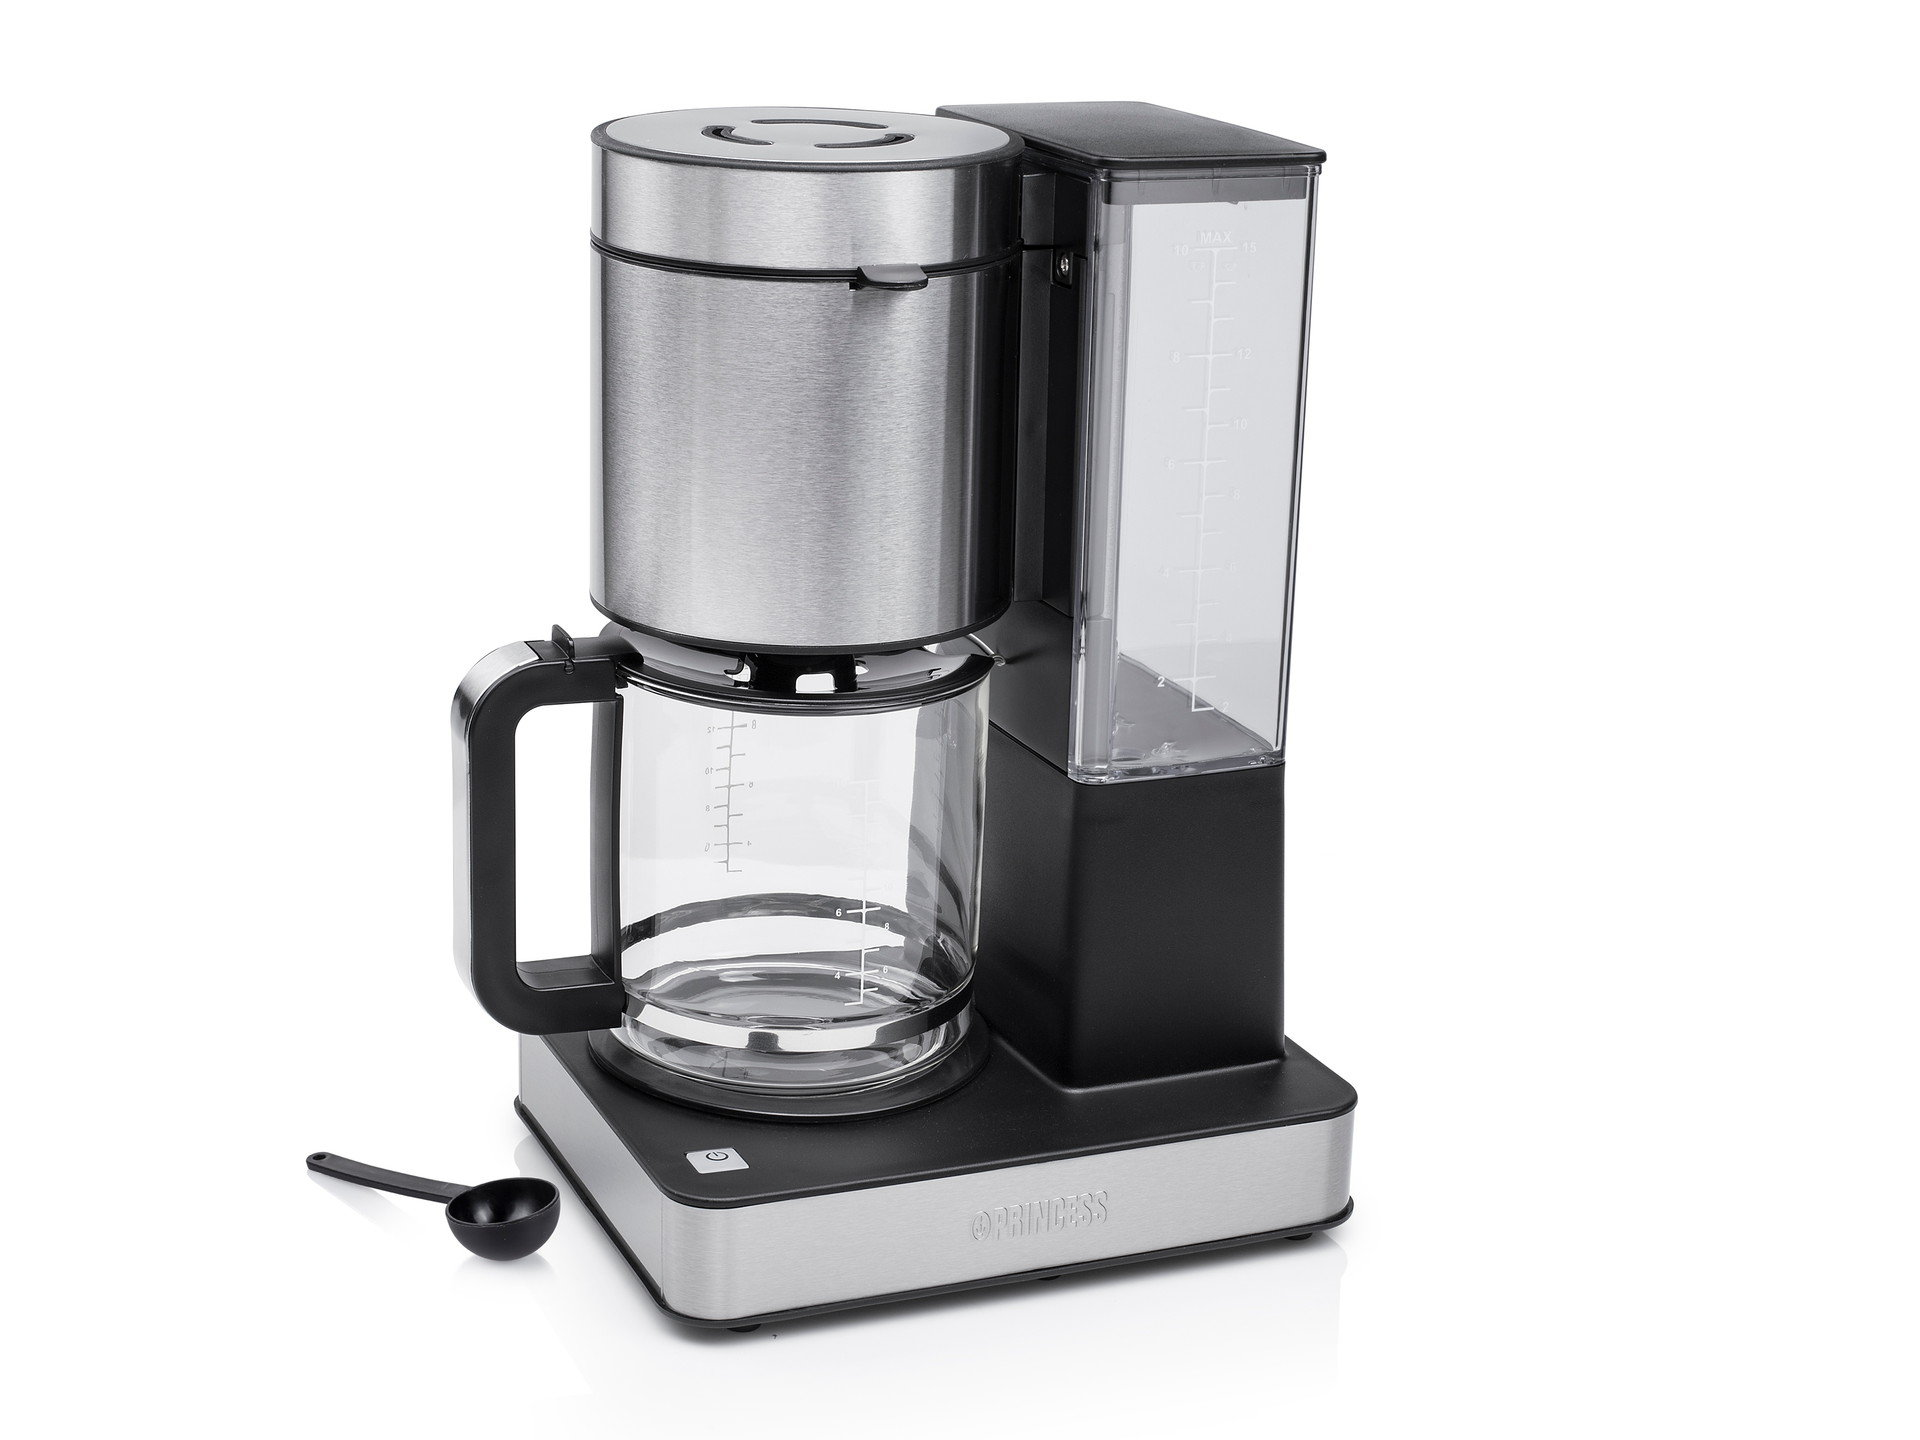 Princess '01.246002.01.001 Coffee Maker Stainless Steel DeLuxe